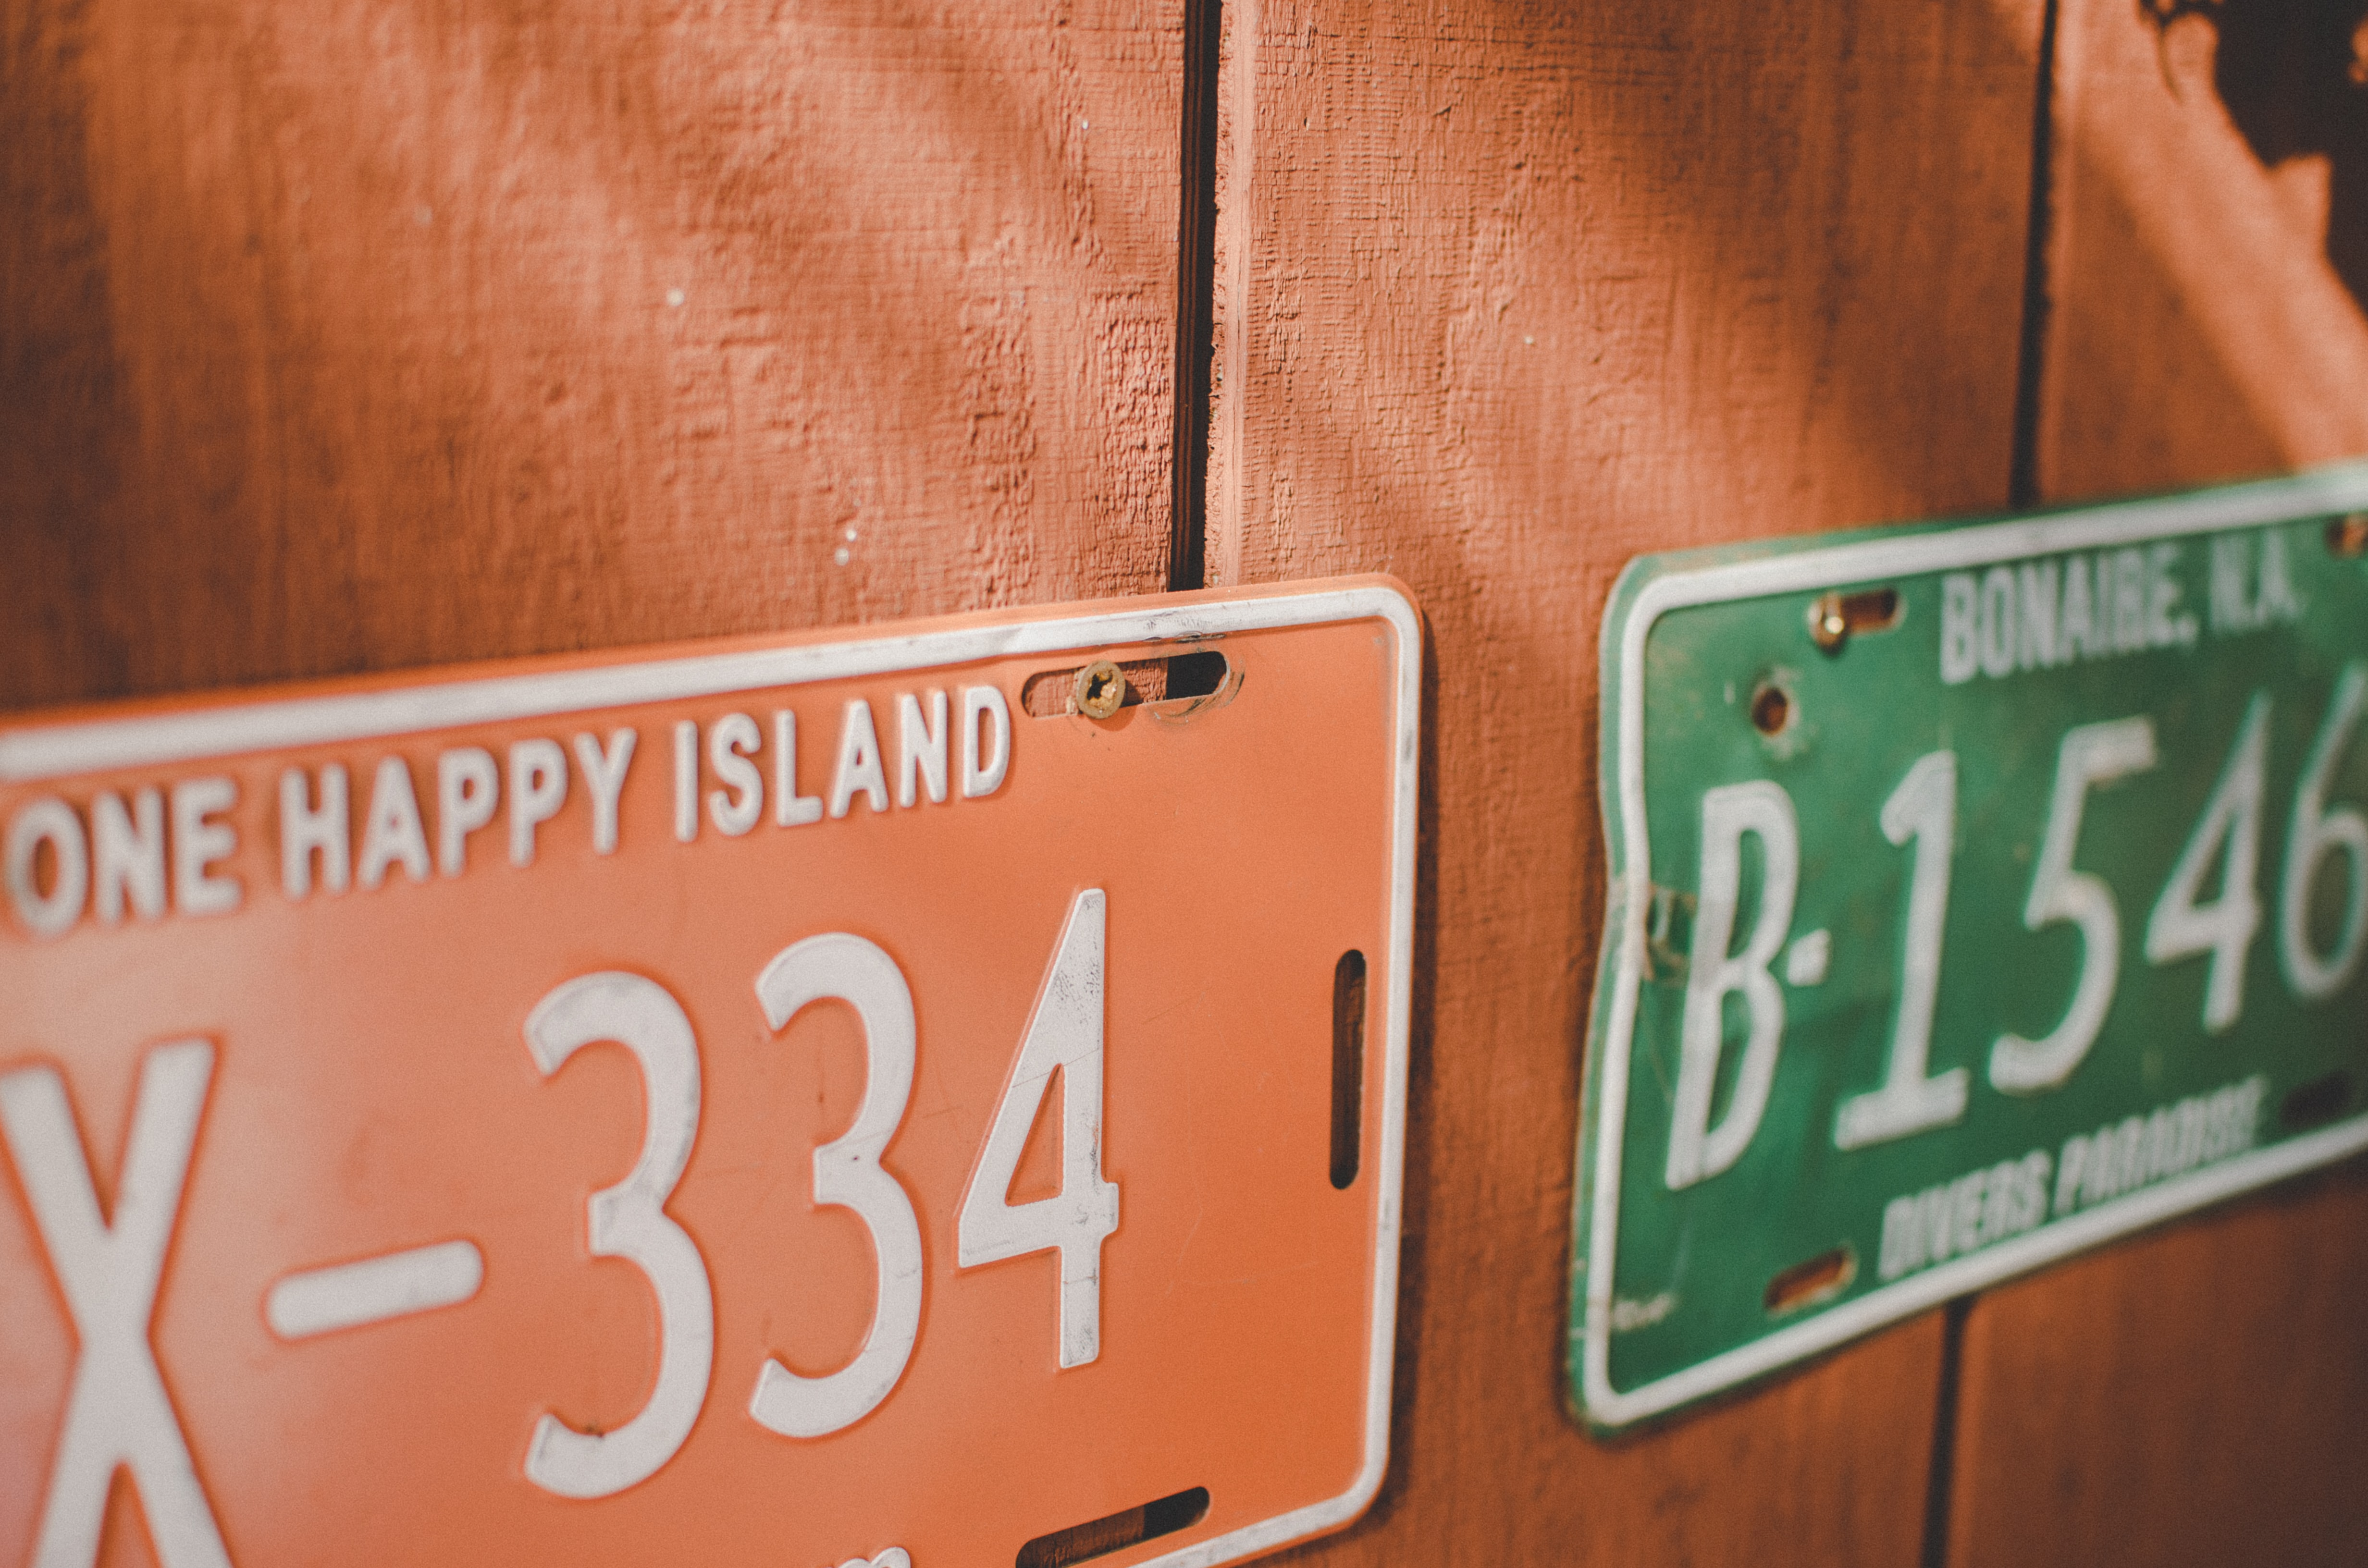 orange X-334 and green B-1546 license plates